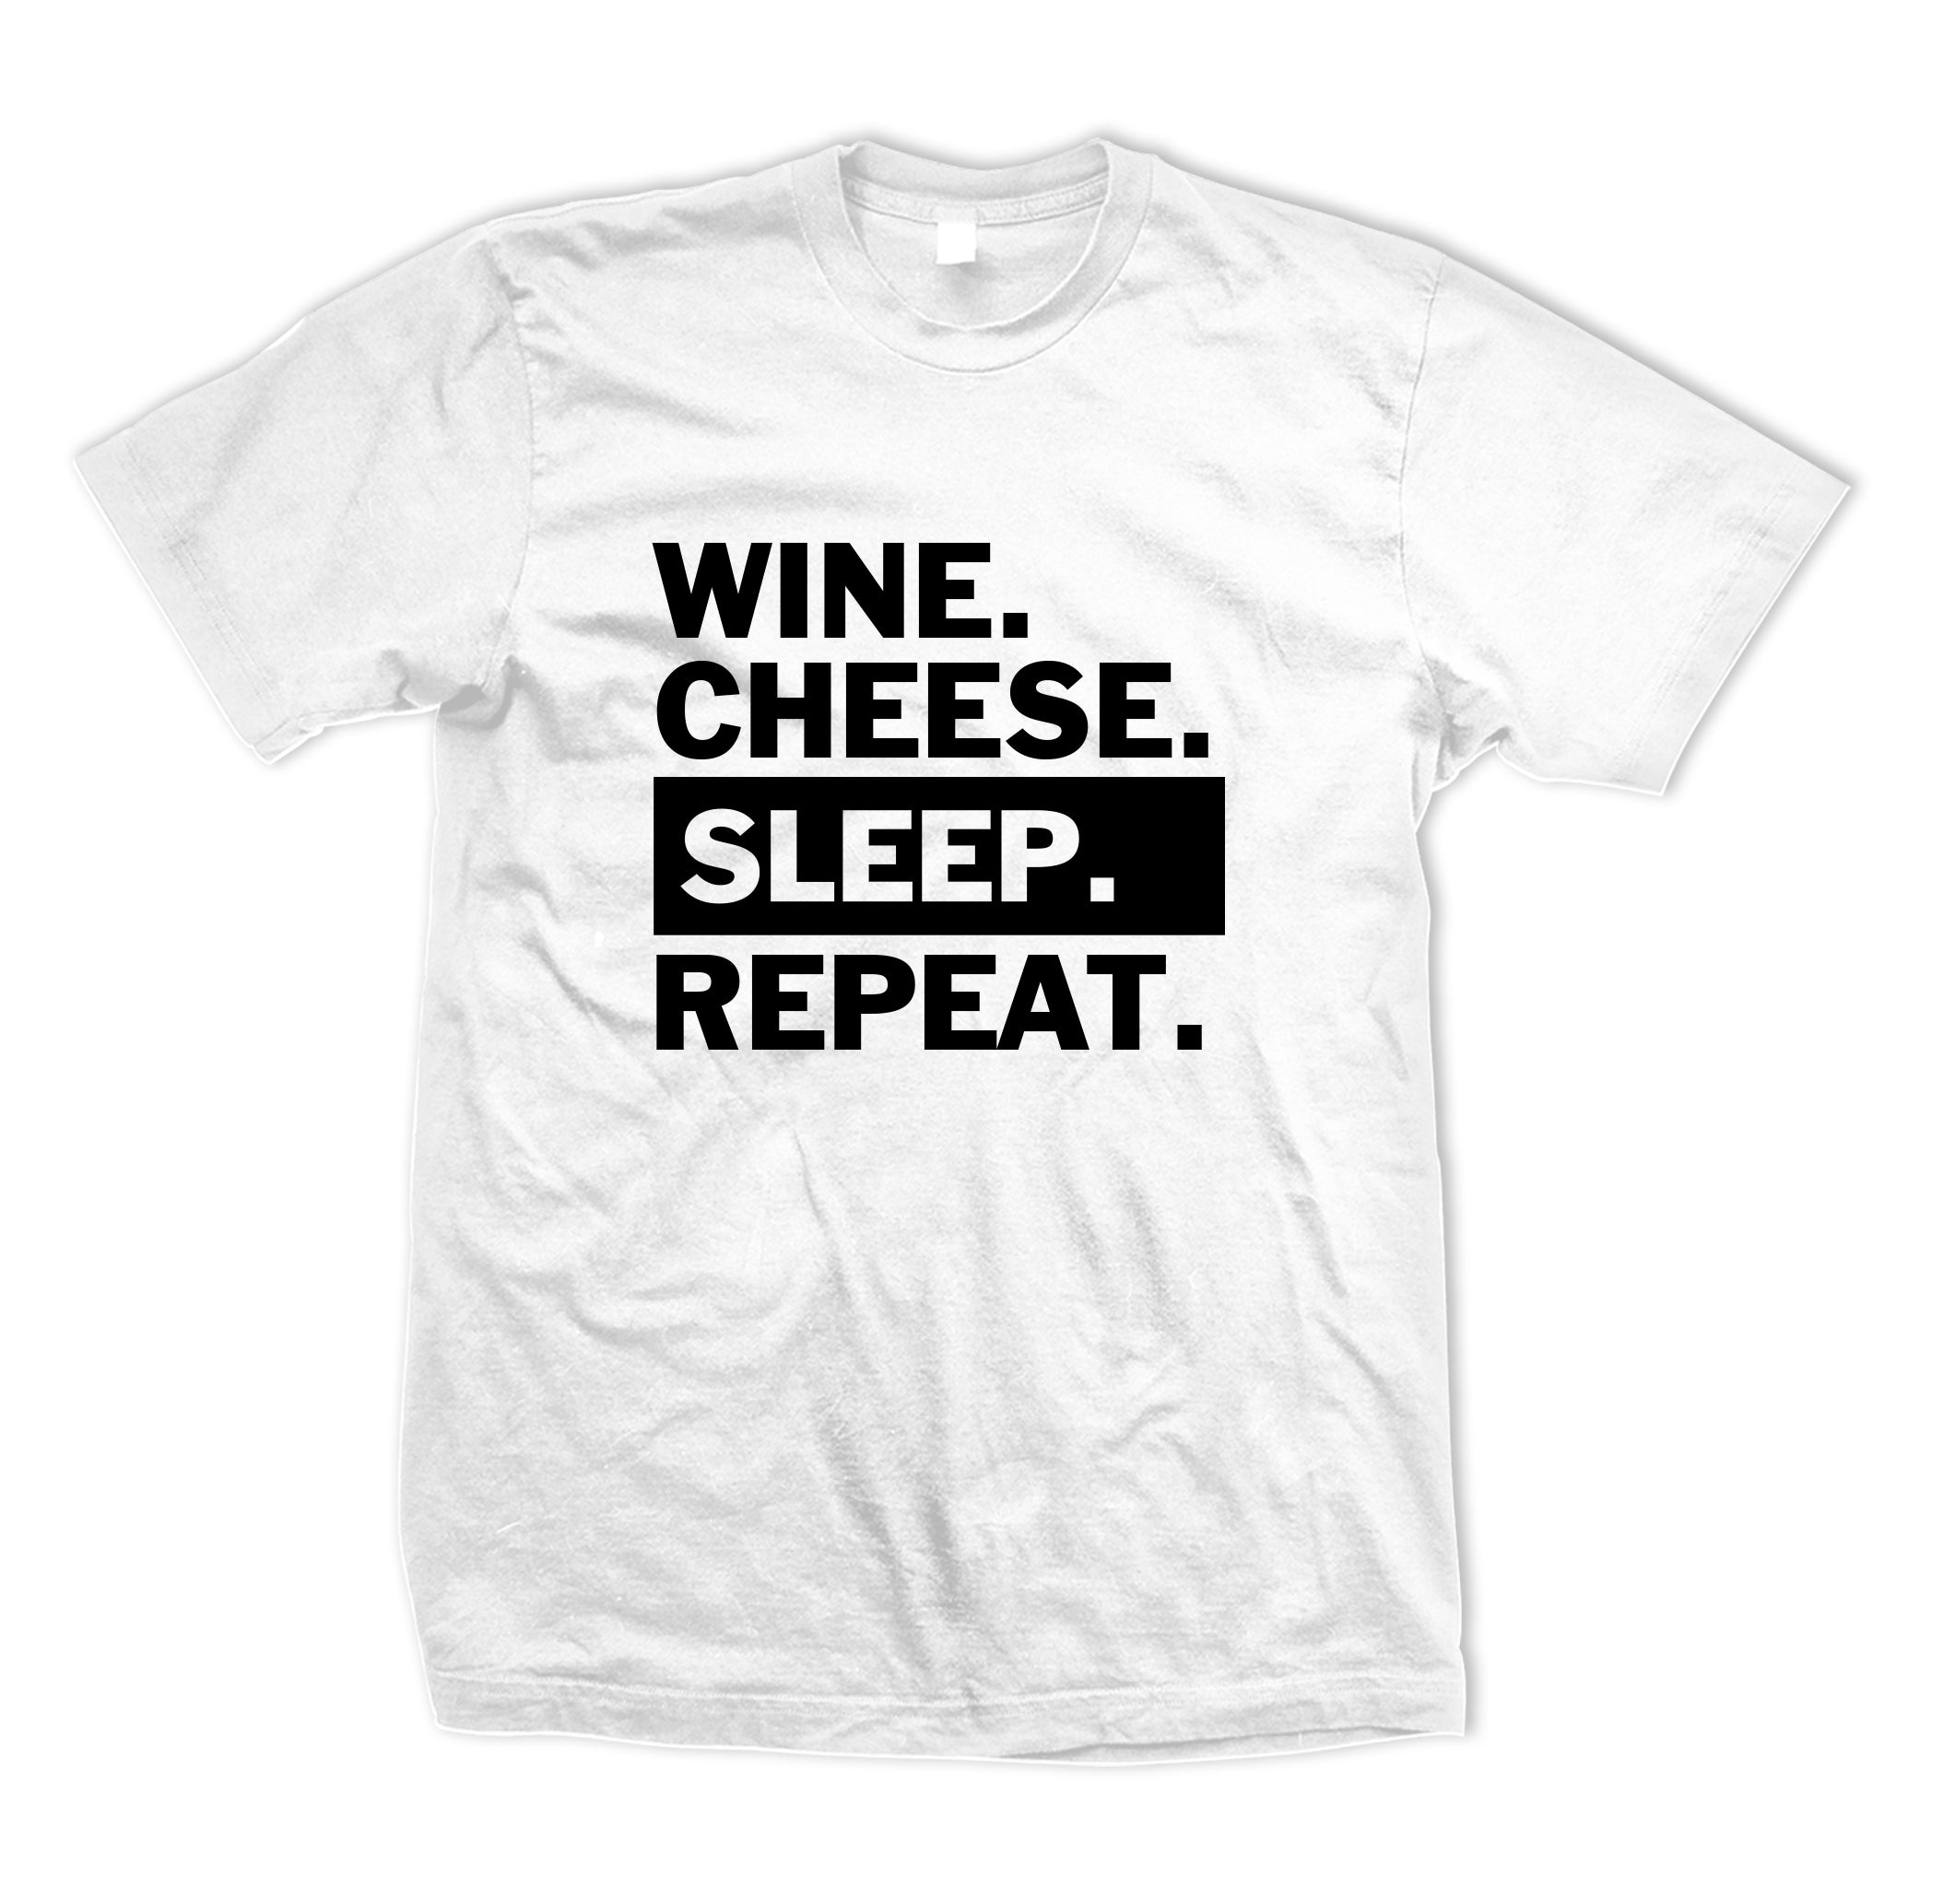 Wine Cheese Sleep Repeat Tee